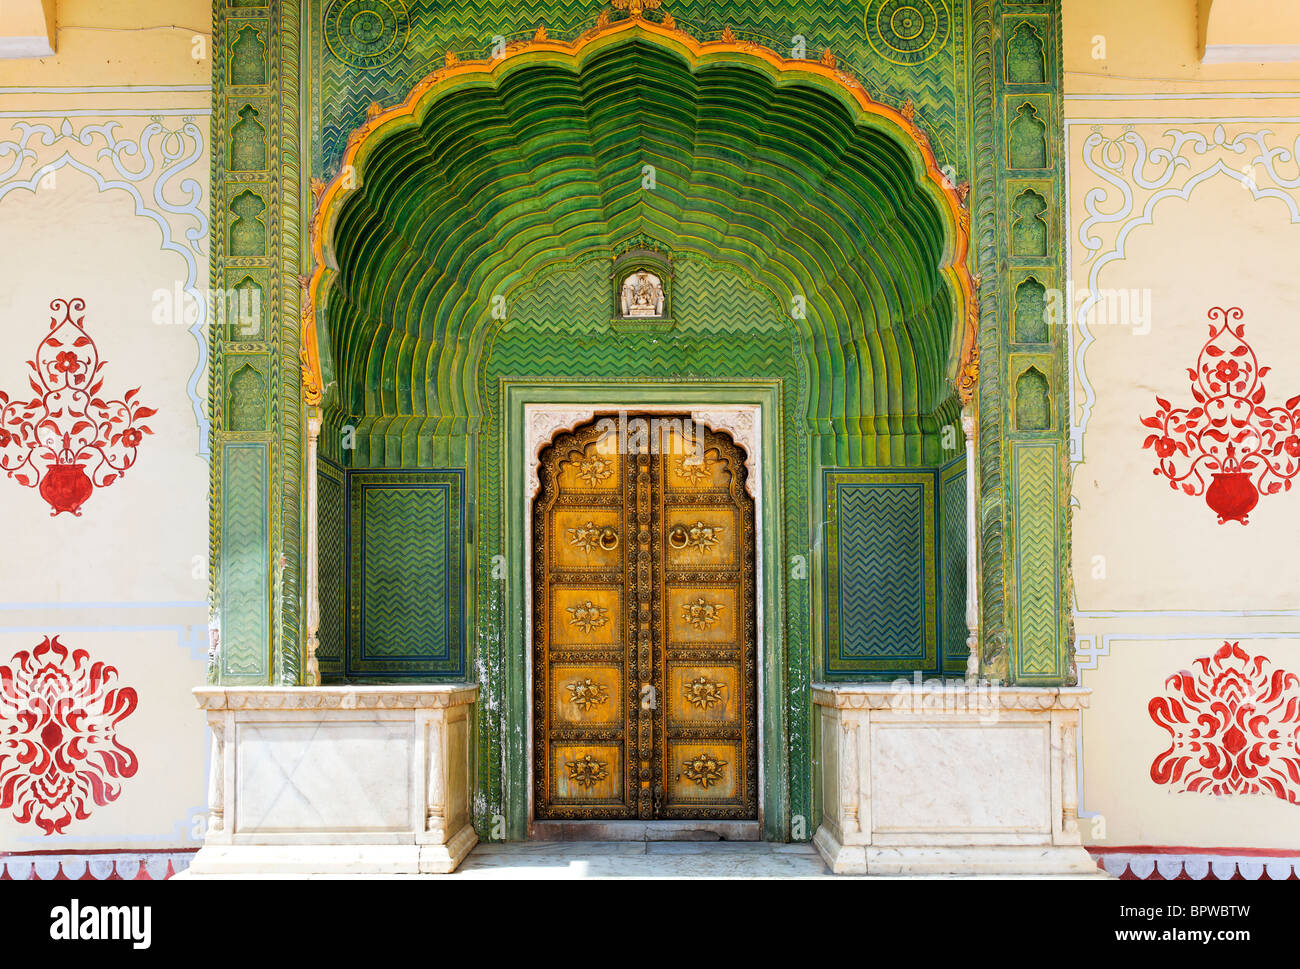 Ornate doorway in the Peacock Courtyard inside the City Palace complex, Jaipur, Rajasthan, India - Stock Image